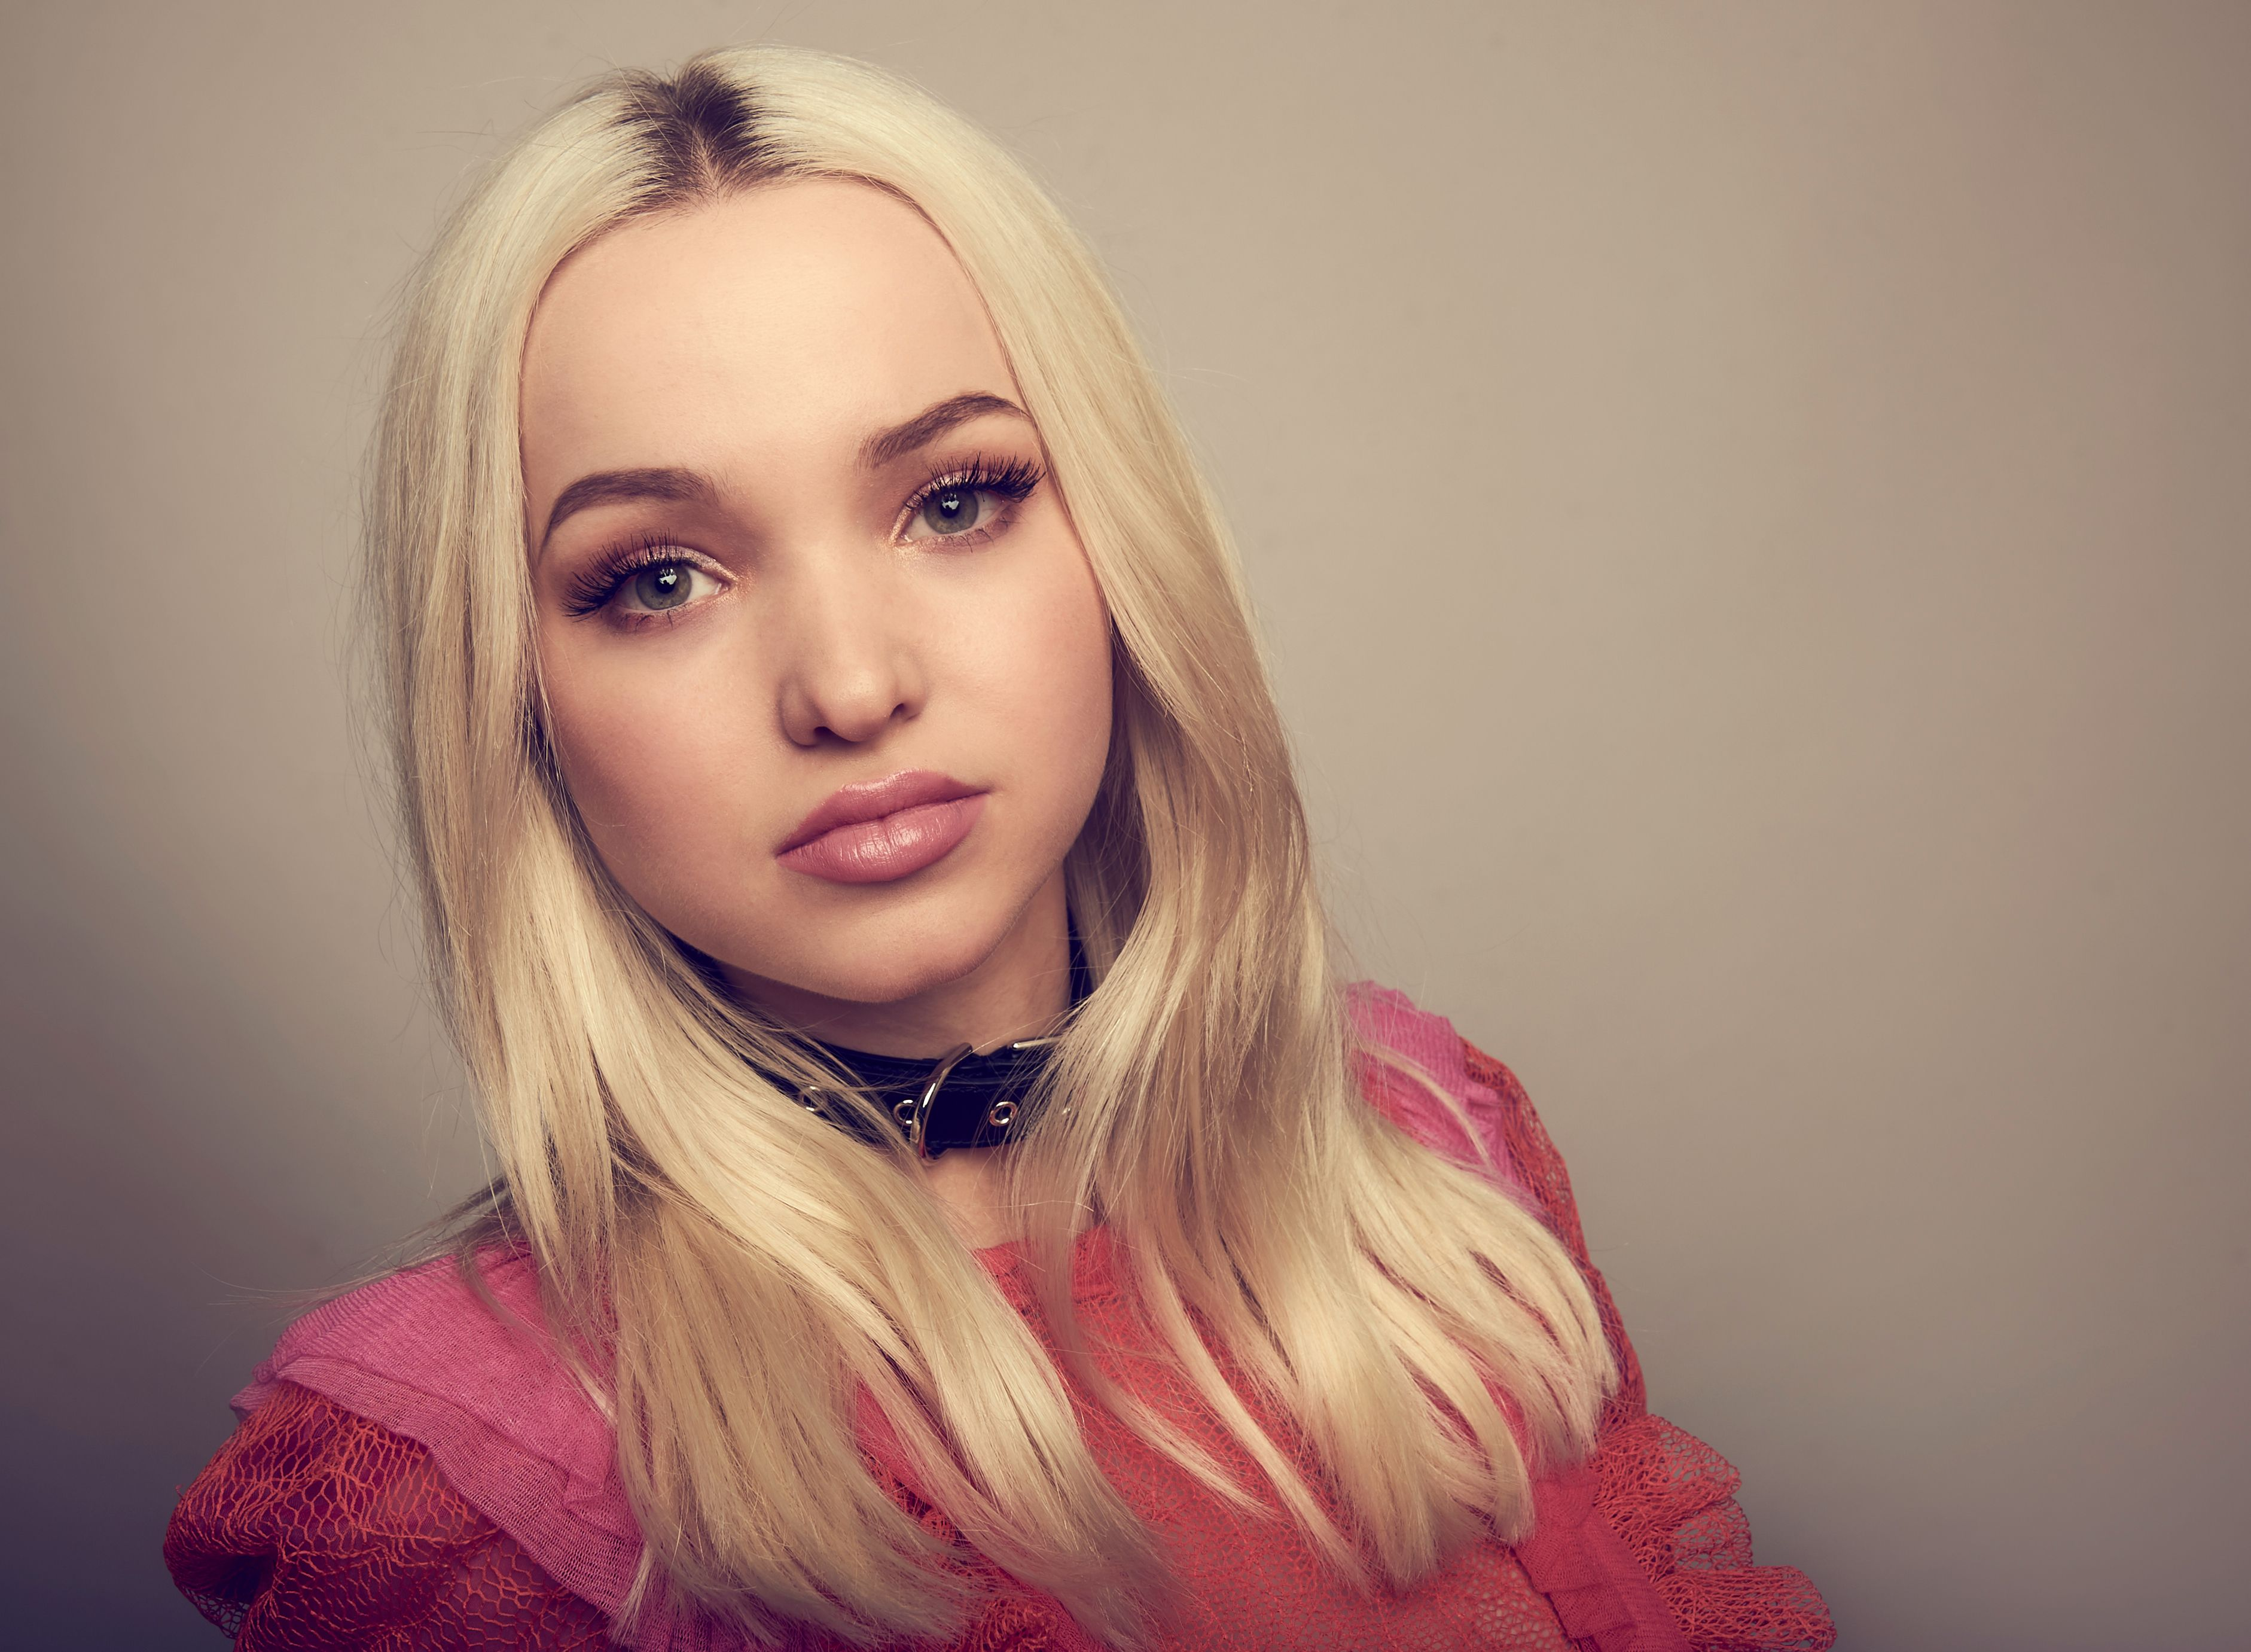 3764x2762 - Dove Cameron Wallpapers 10